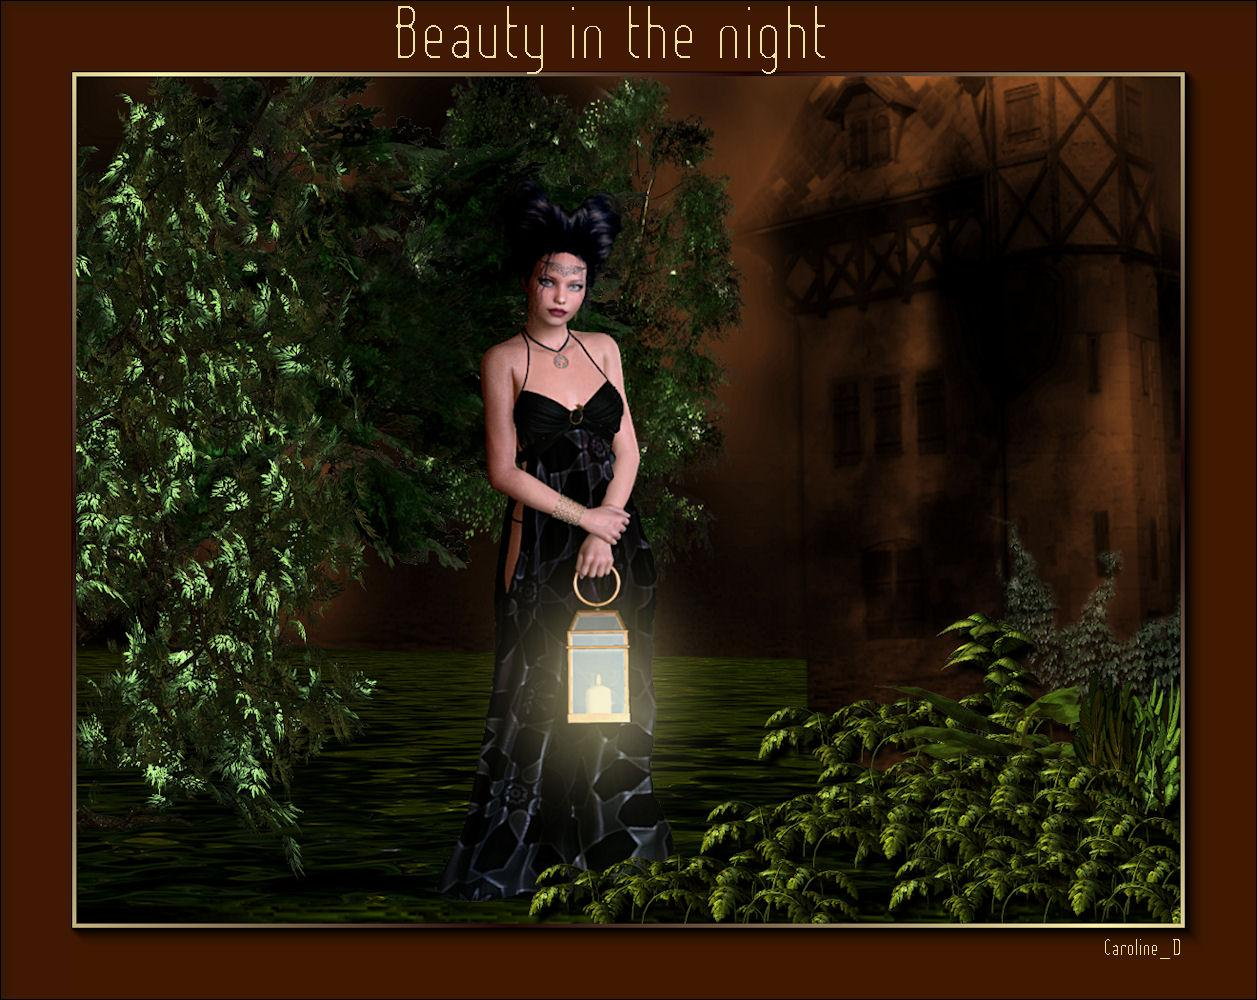 Beauty in the night